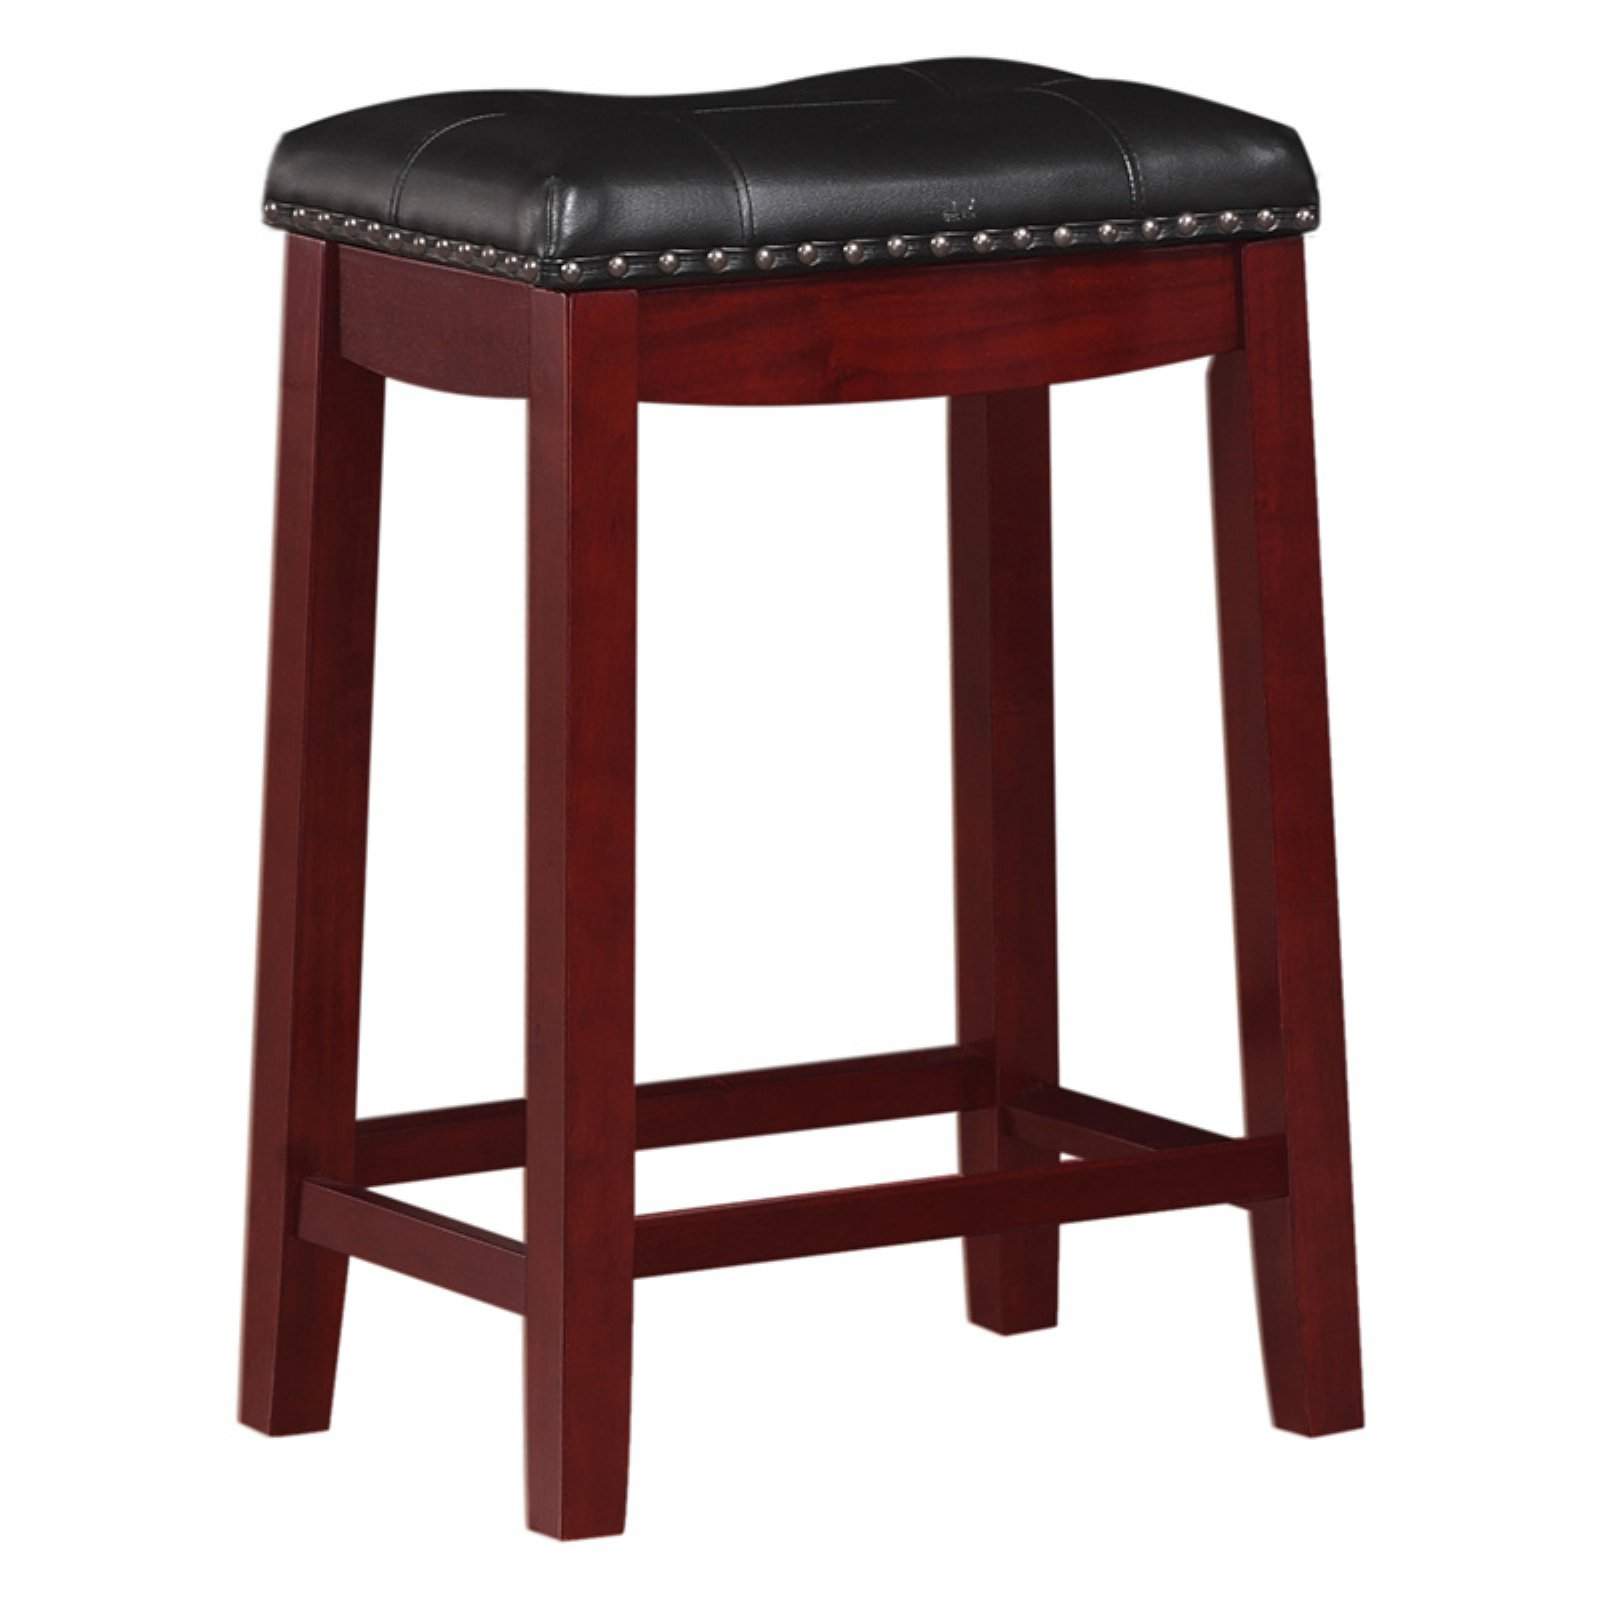 "Angel Line Cambridge 24"" Padded Saddle Stool, Cherry w/ Black Cushion"